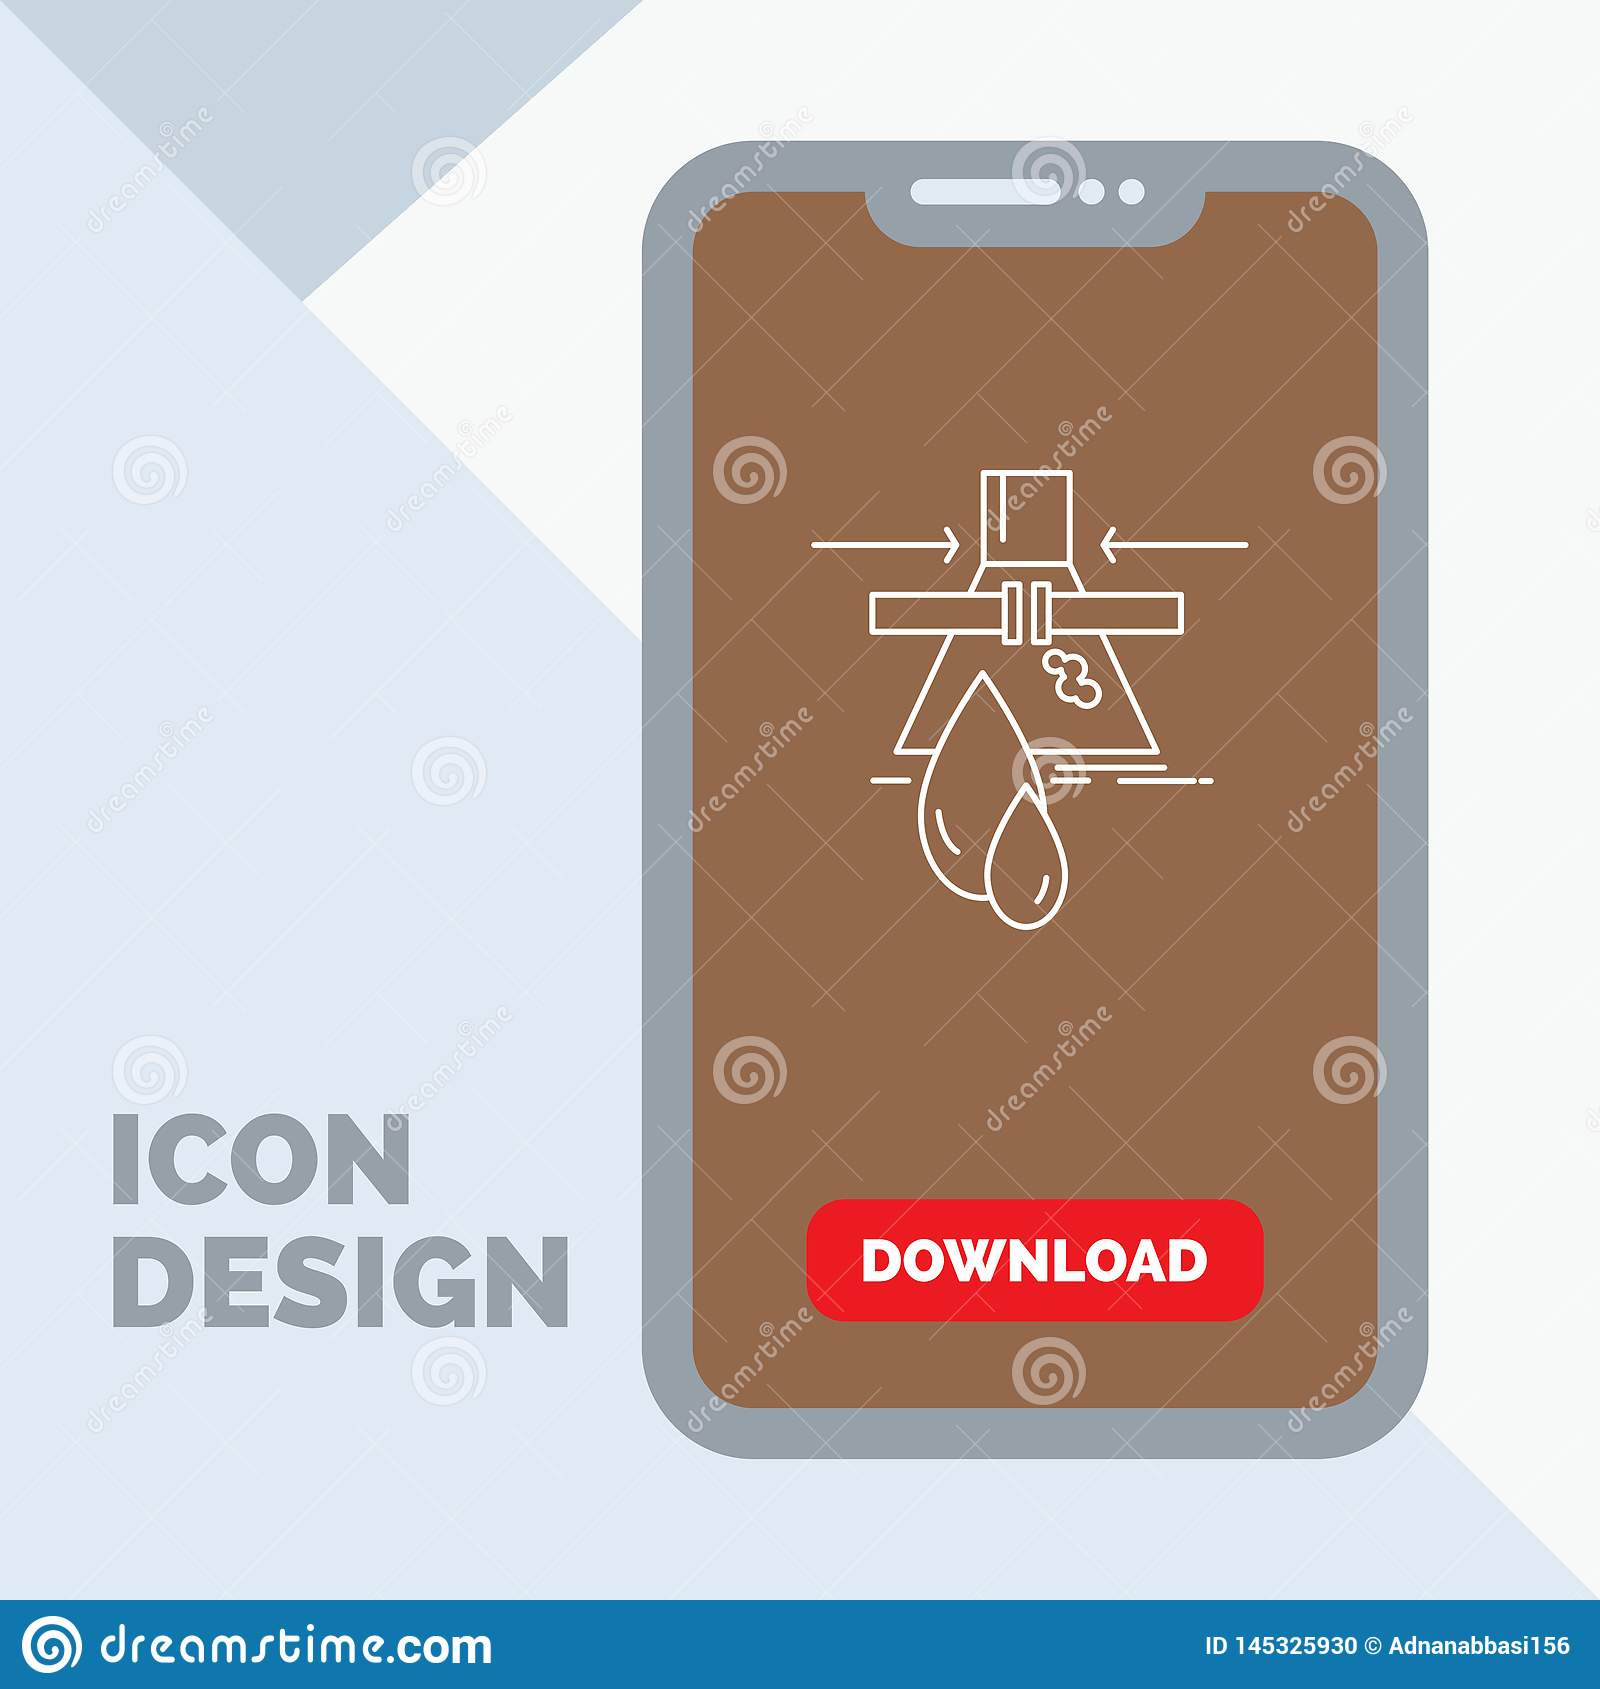 Chemical, Leak, Detection, Factory, pollution Line Icon in Mobile for Download Page